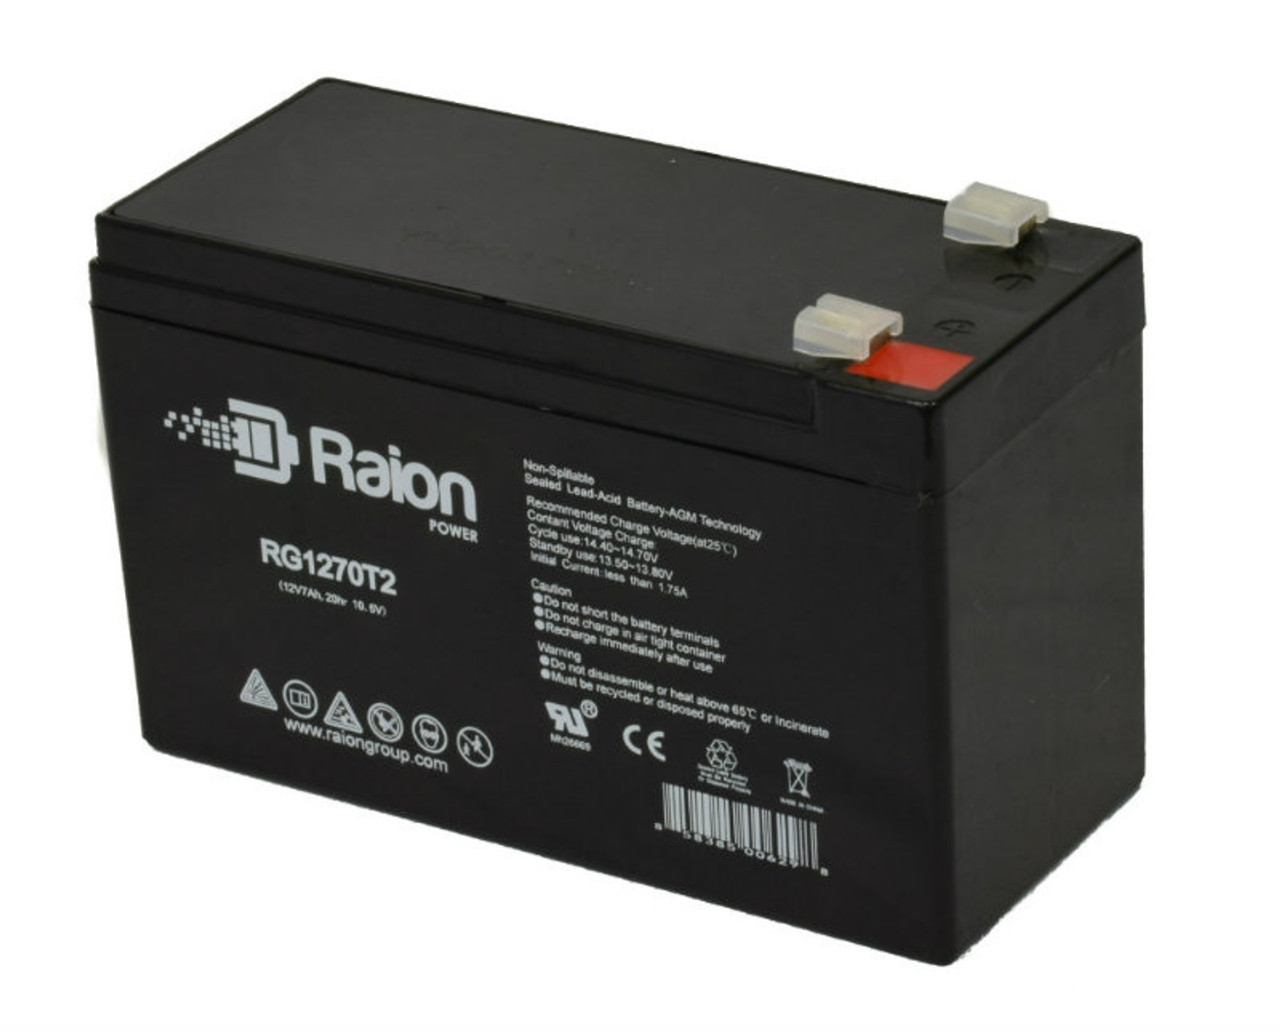 Raion Power RG1270T1 Replacement Battery for Consent Battery GS127-2